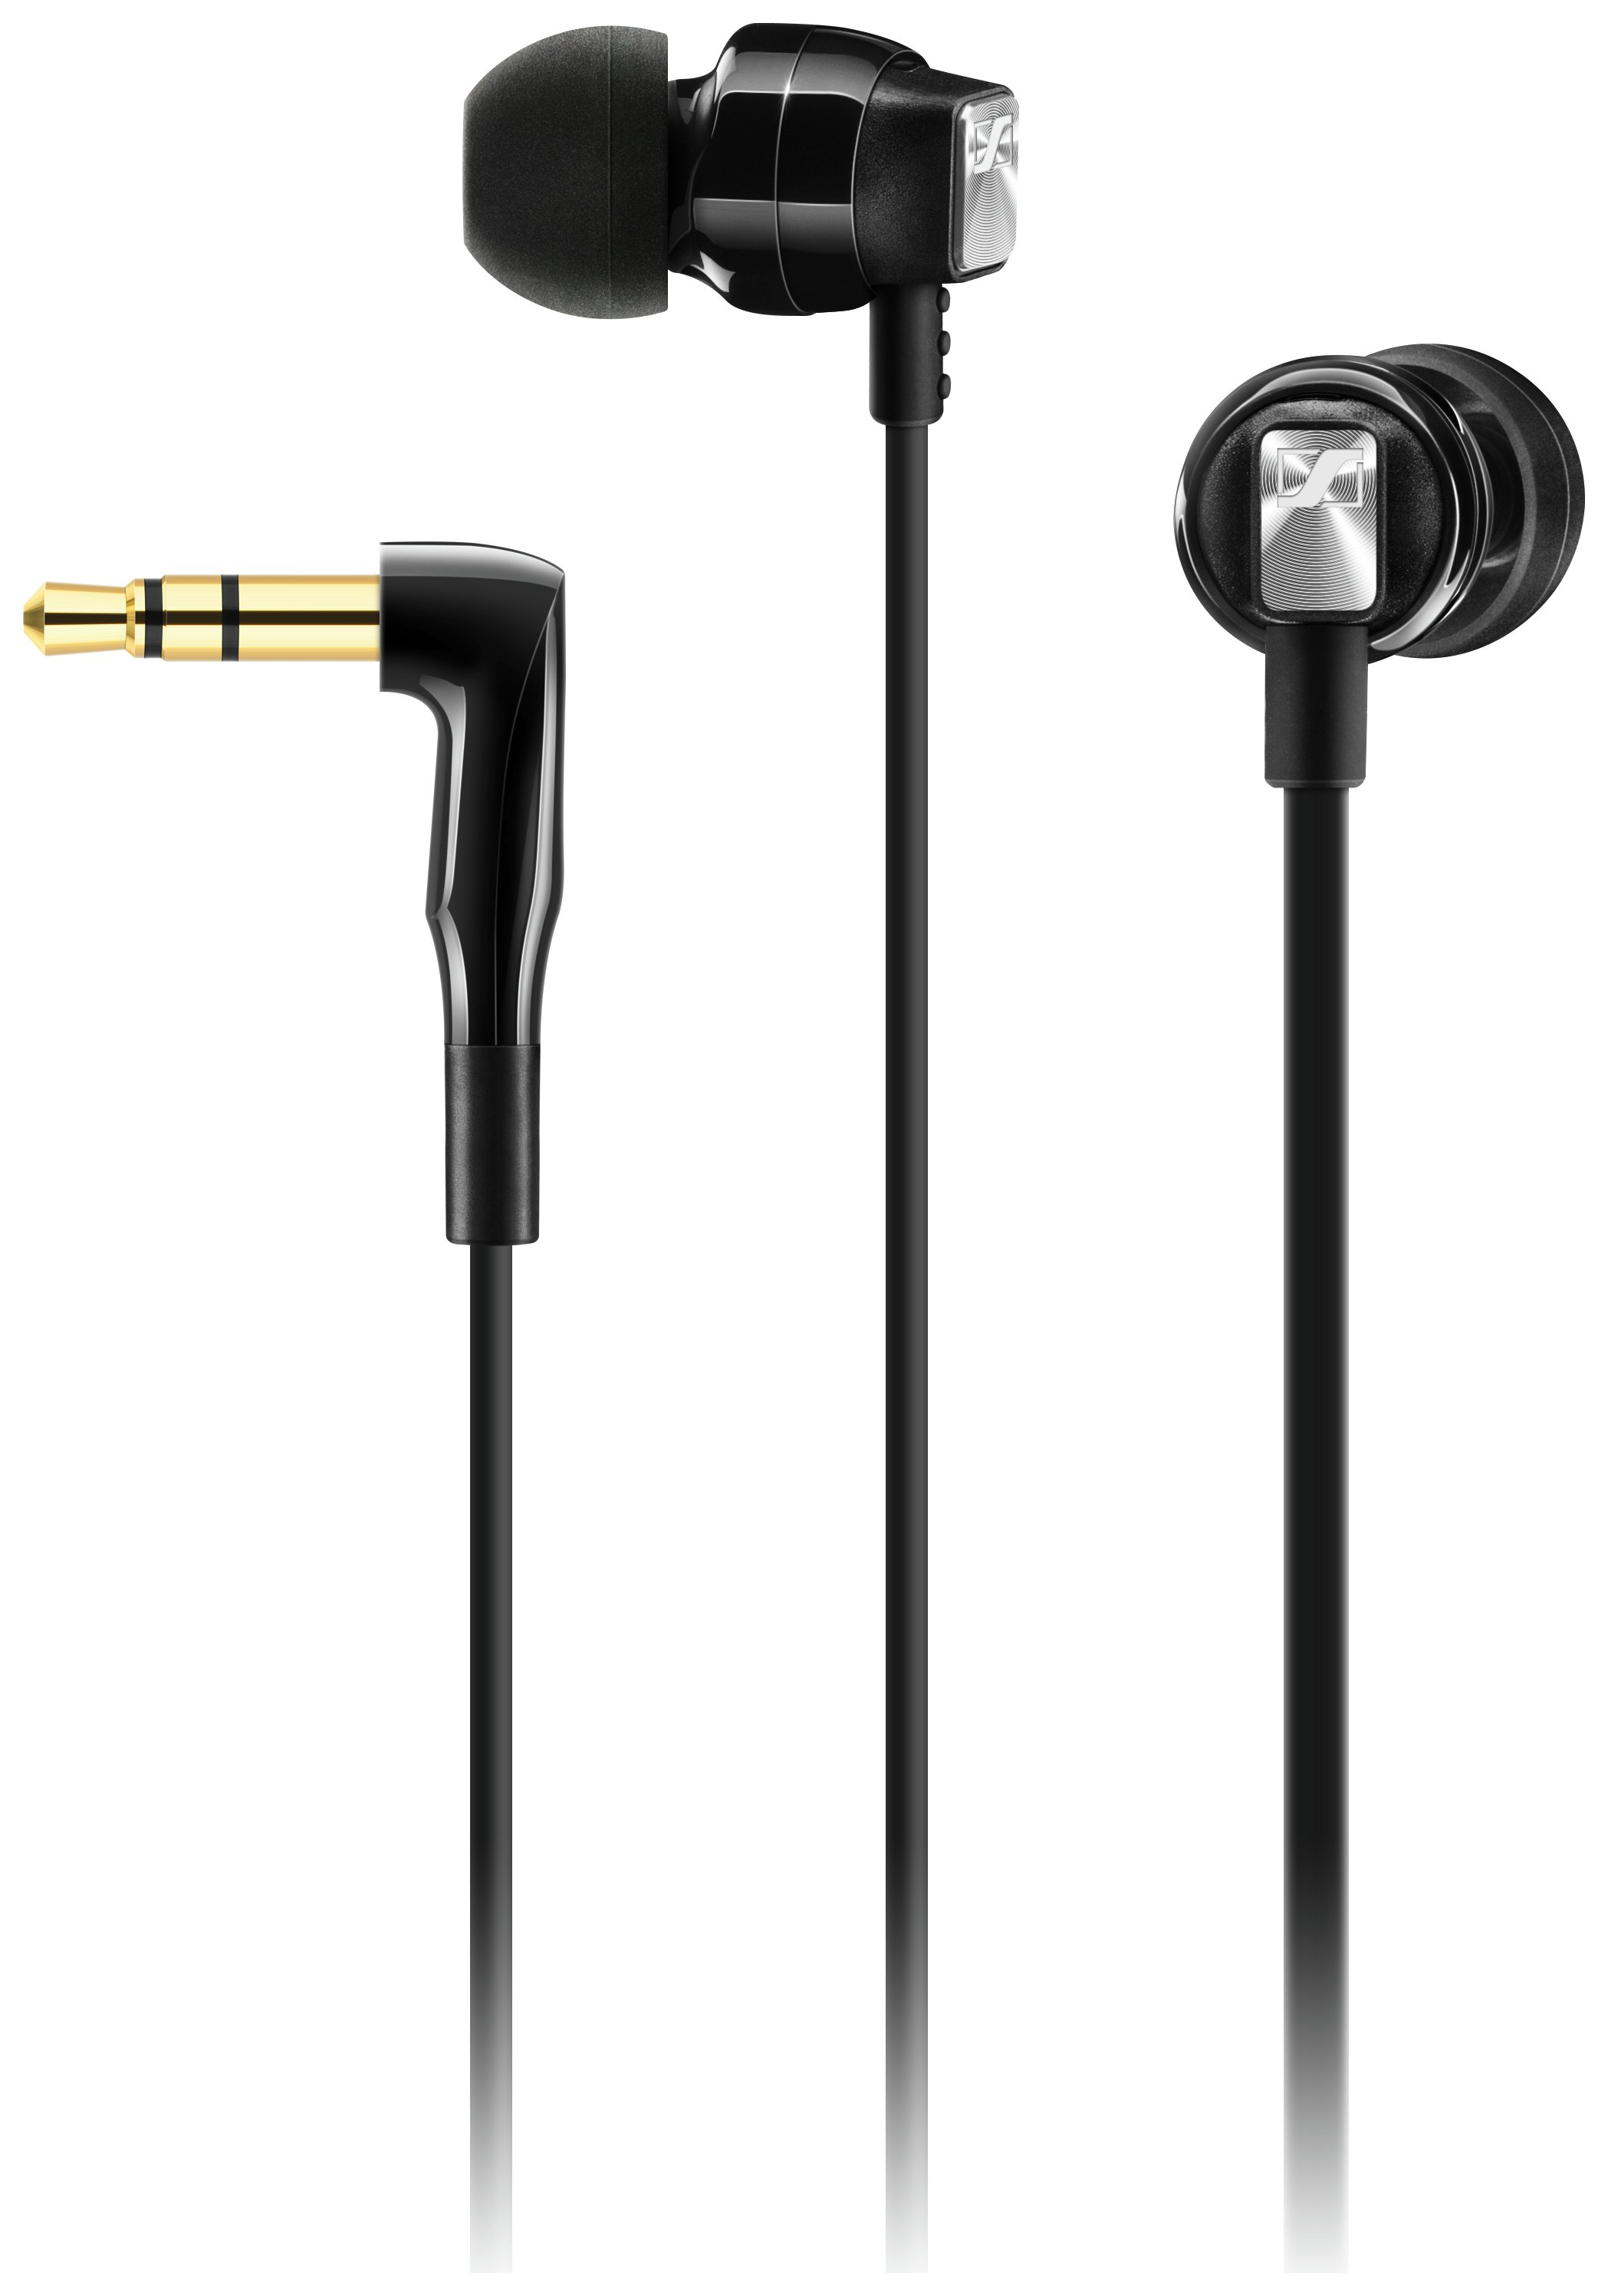 Sennheiser CX 3.00 In-Ear Headphones - Black